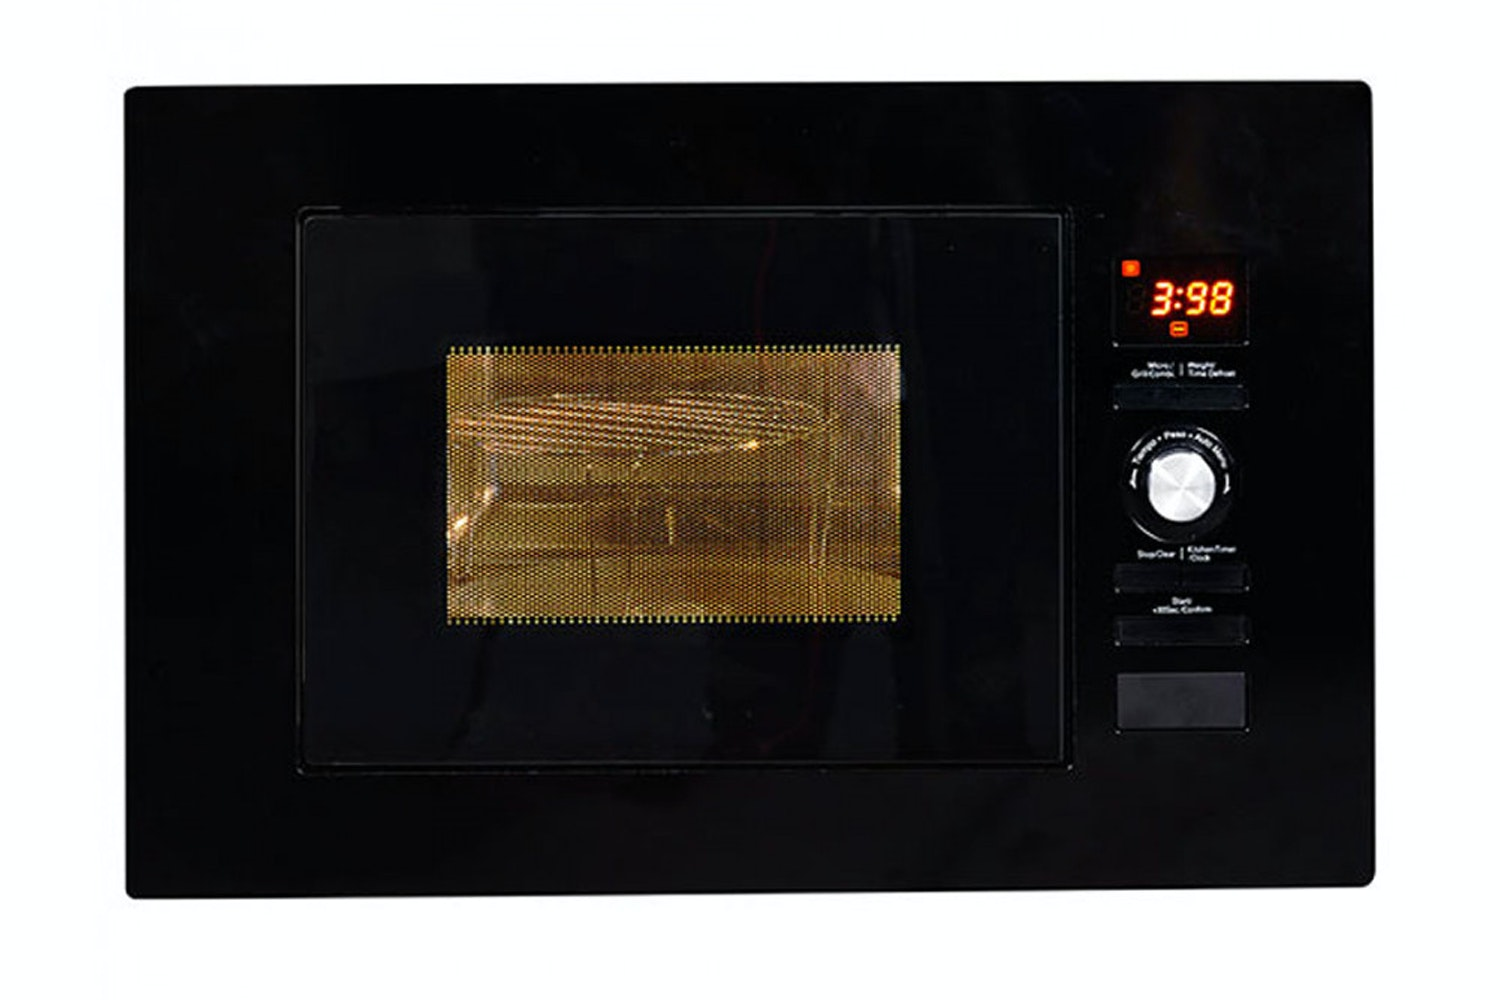 Nordmende 20L Built-In Microwave Oven | NM823BBL